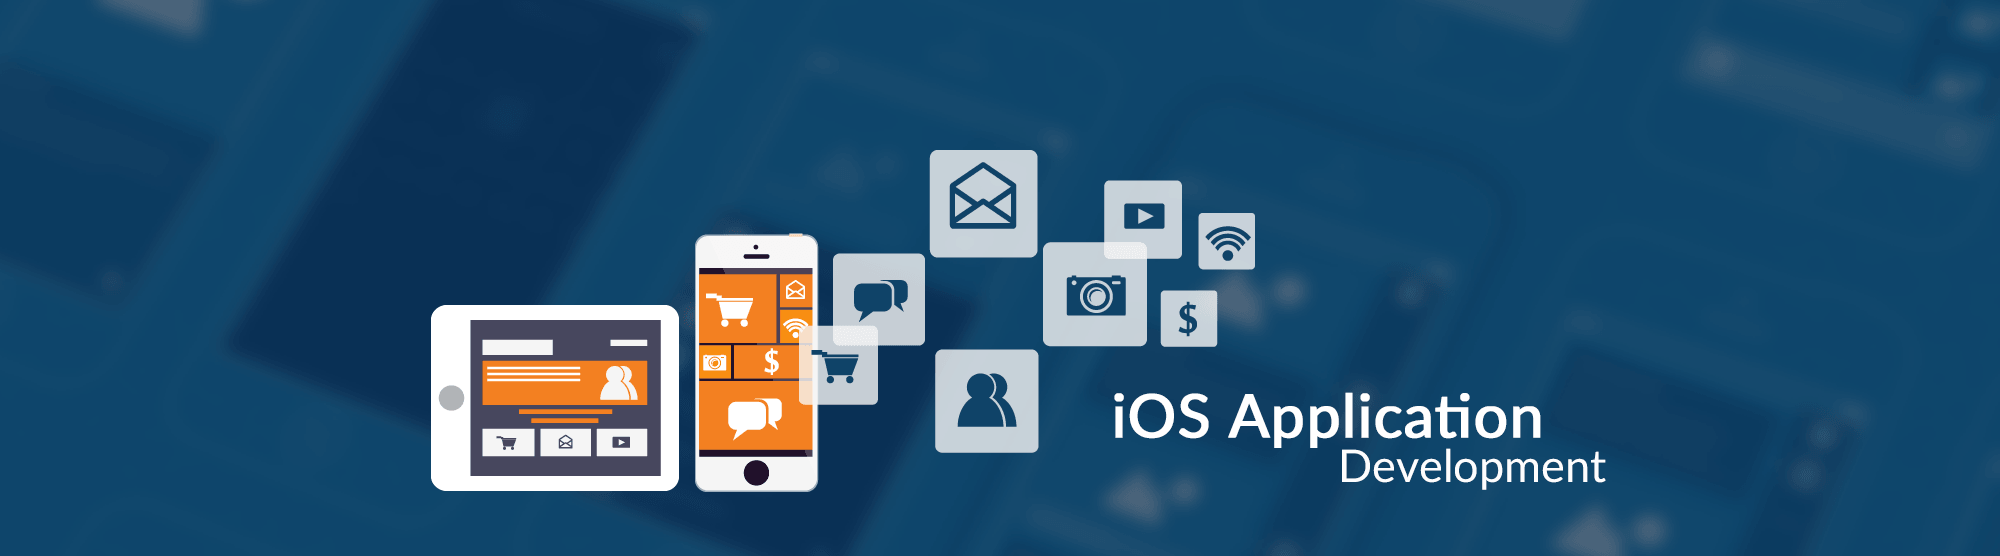 iPhone Apps Development Gradient Infotech